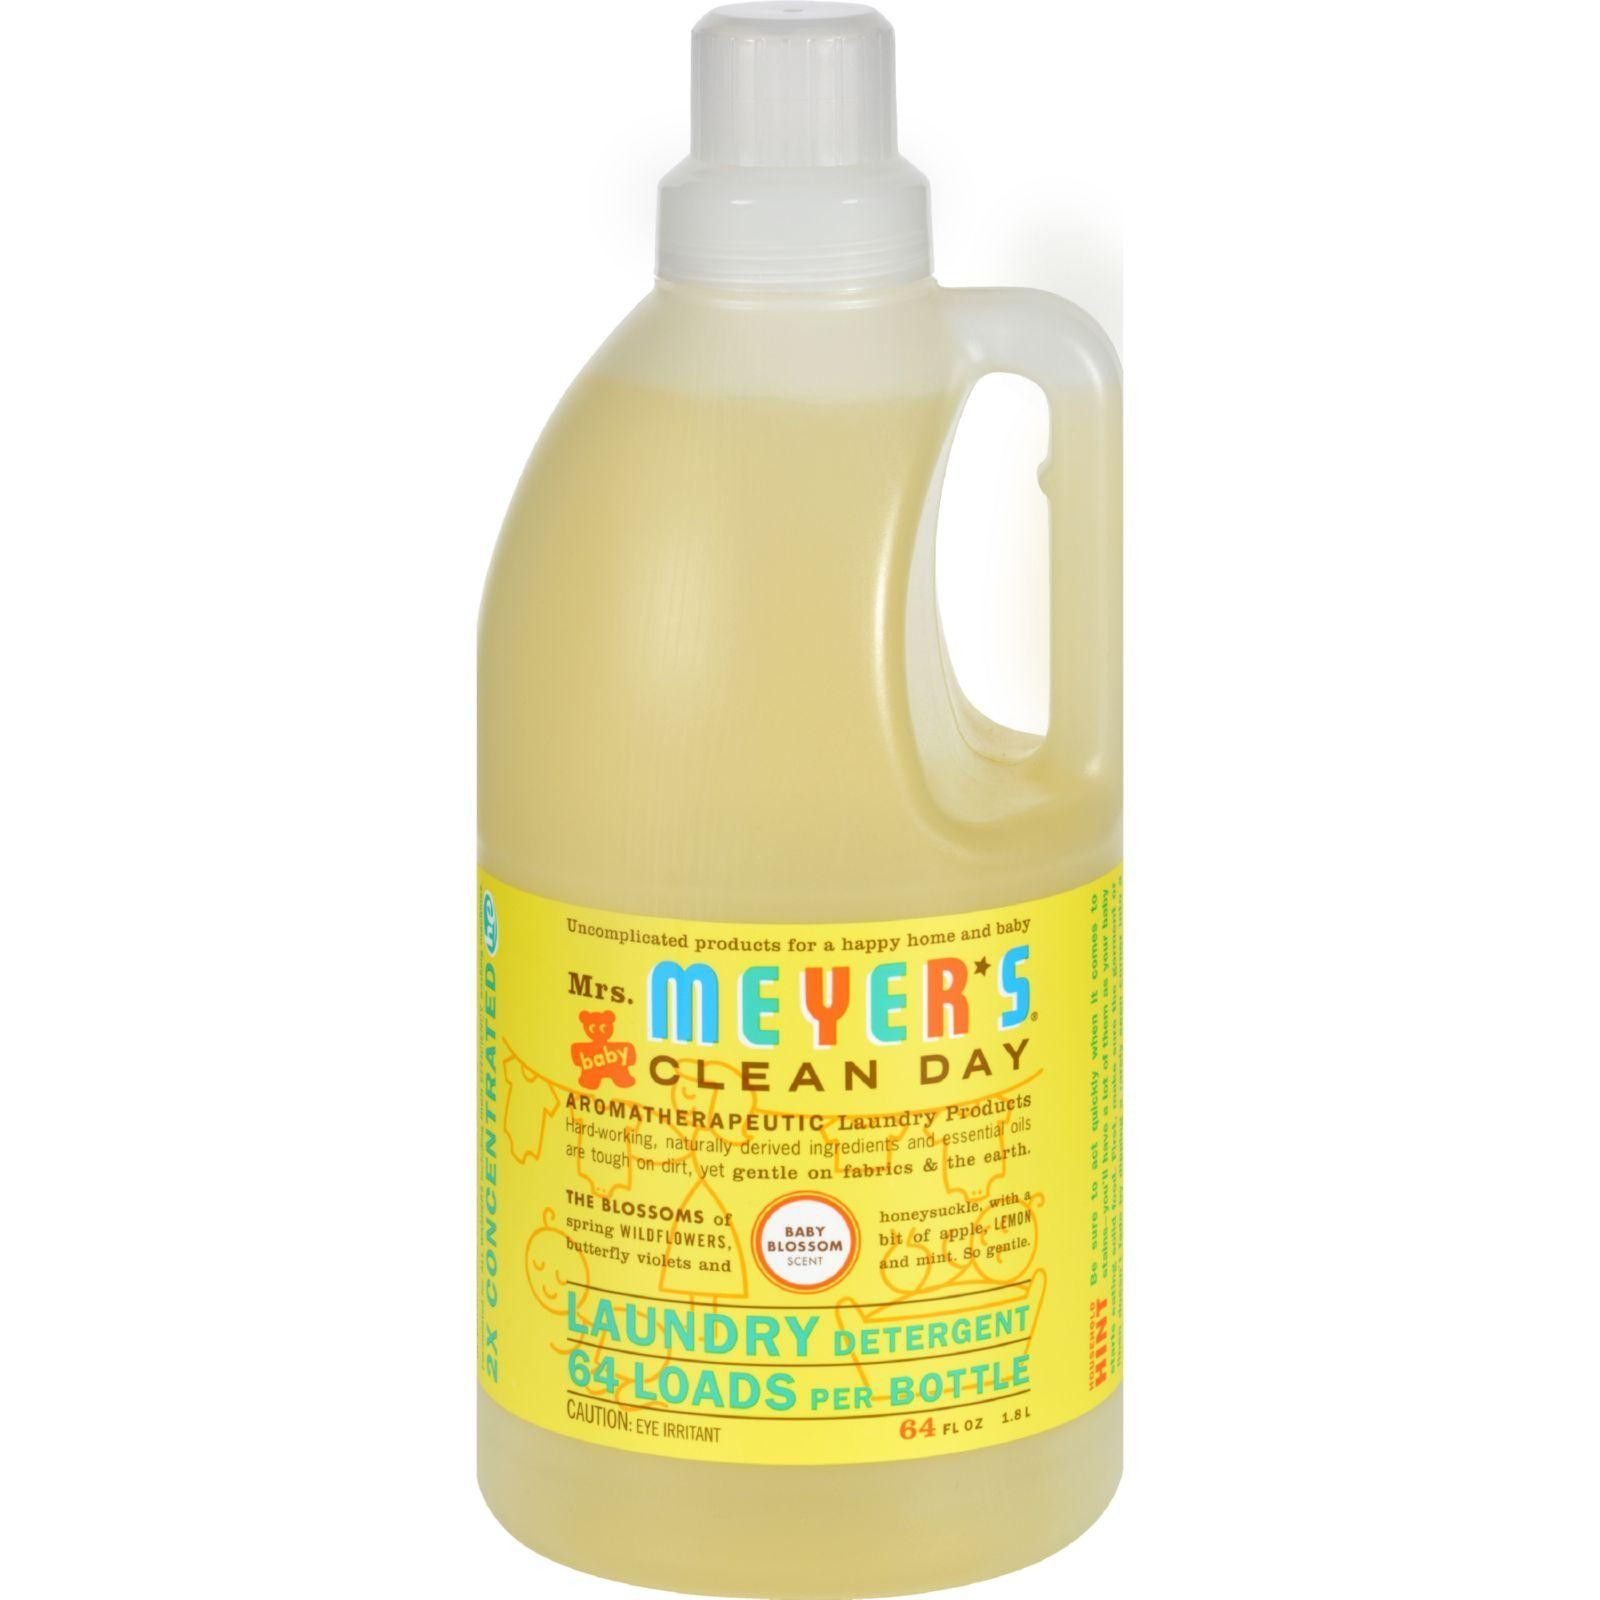 Mrs Meyer S 2x Laundry Detergent Baby Blossom Case Of 6 64 Oz Laundry Detergent Cleaning Day Liquid Laundry Detergent